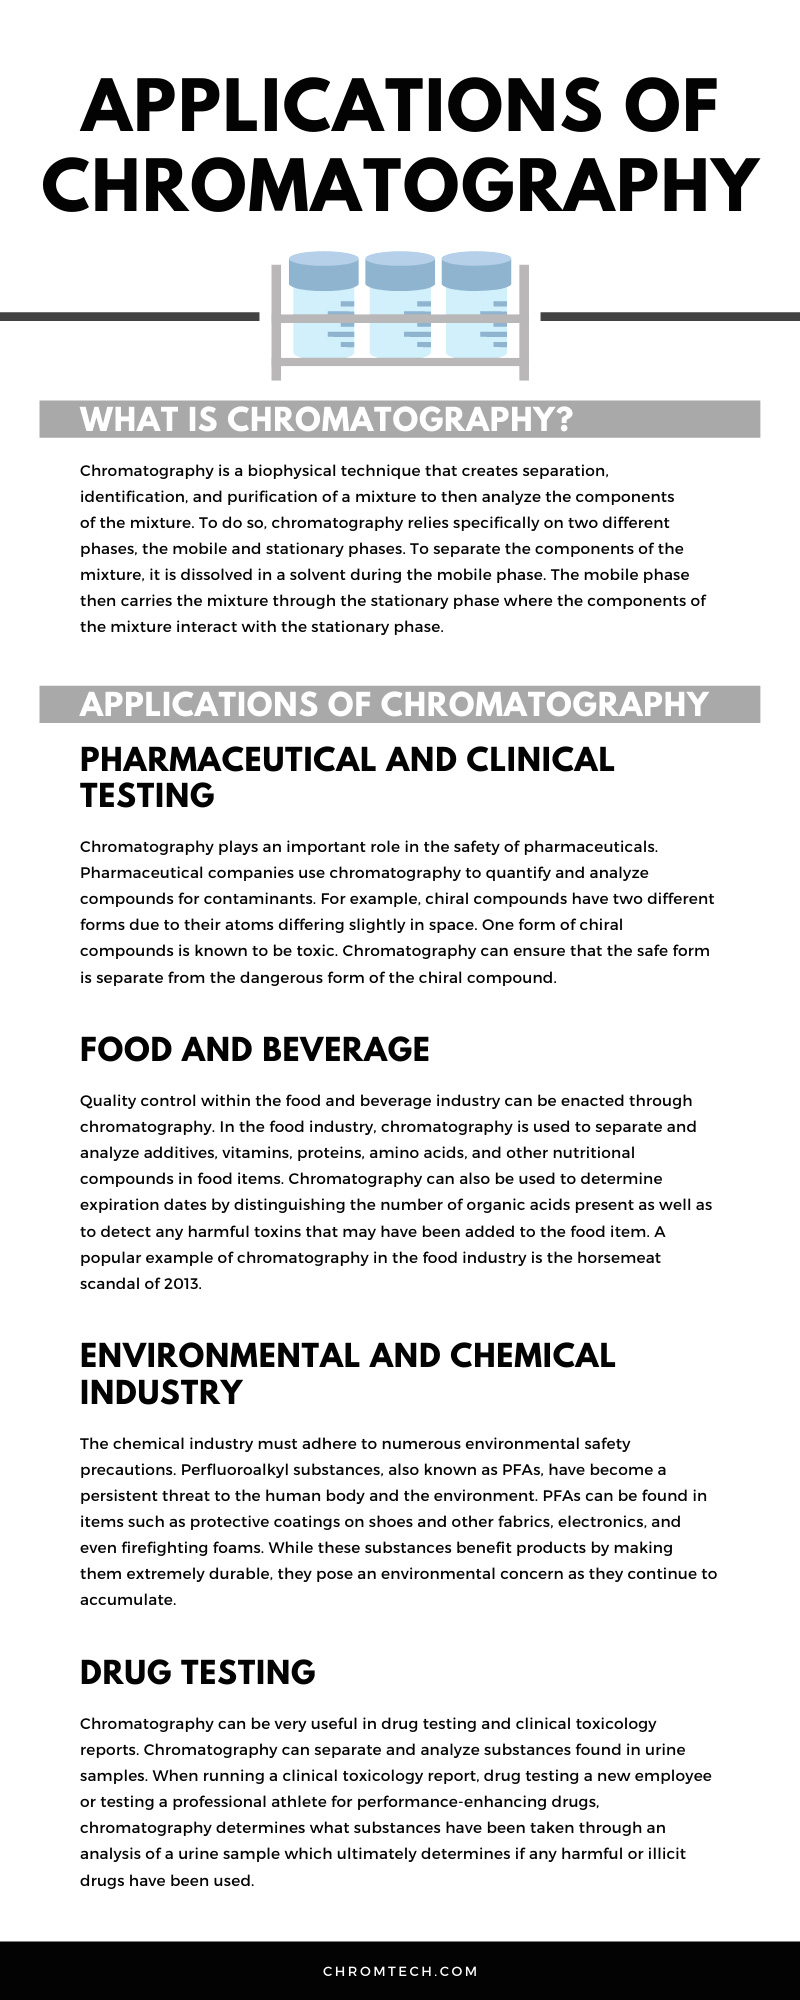 Applications of Chromatography Infographic